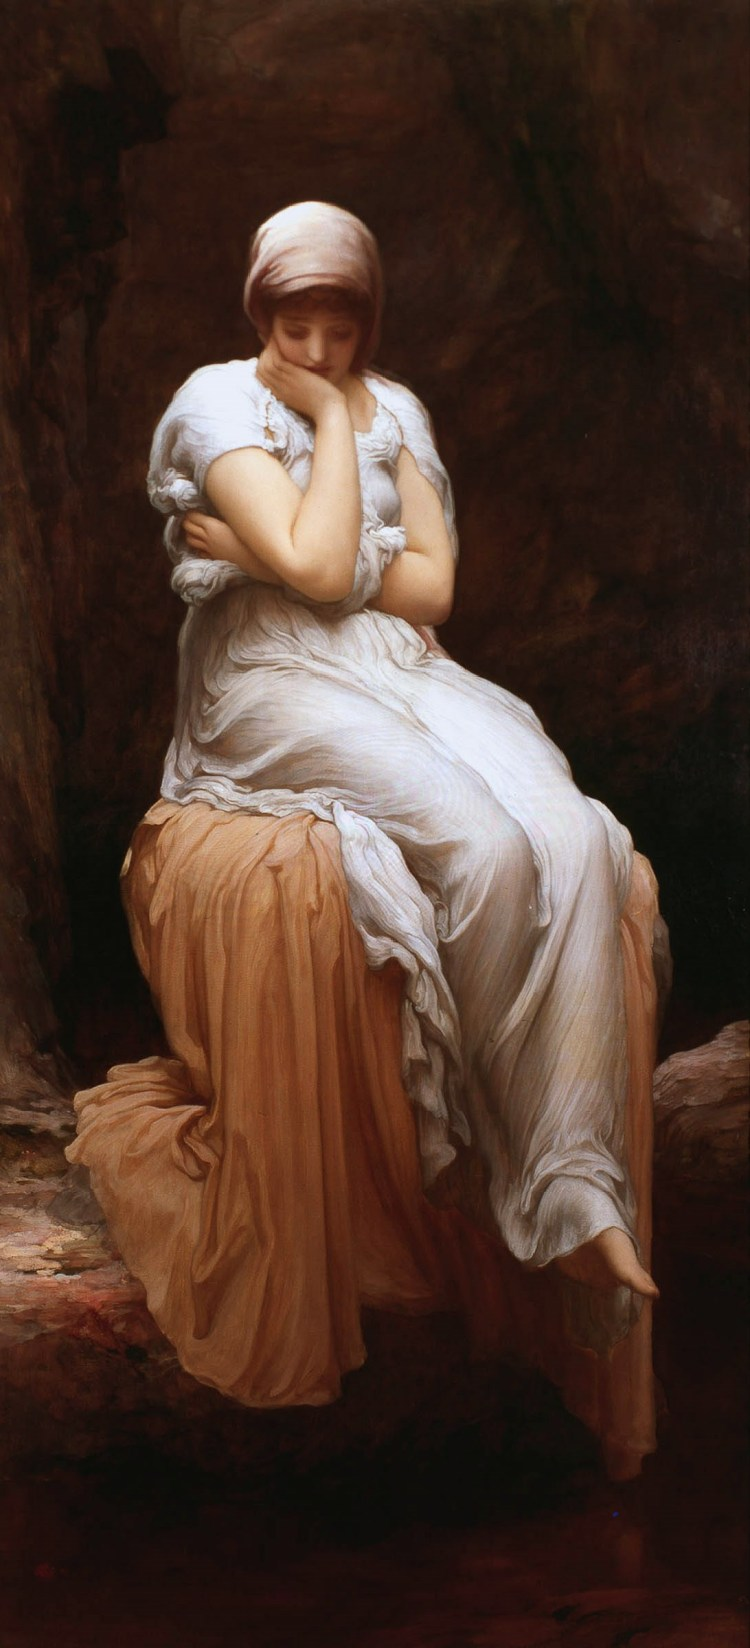 Solitude, by Frederic Leighton